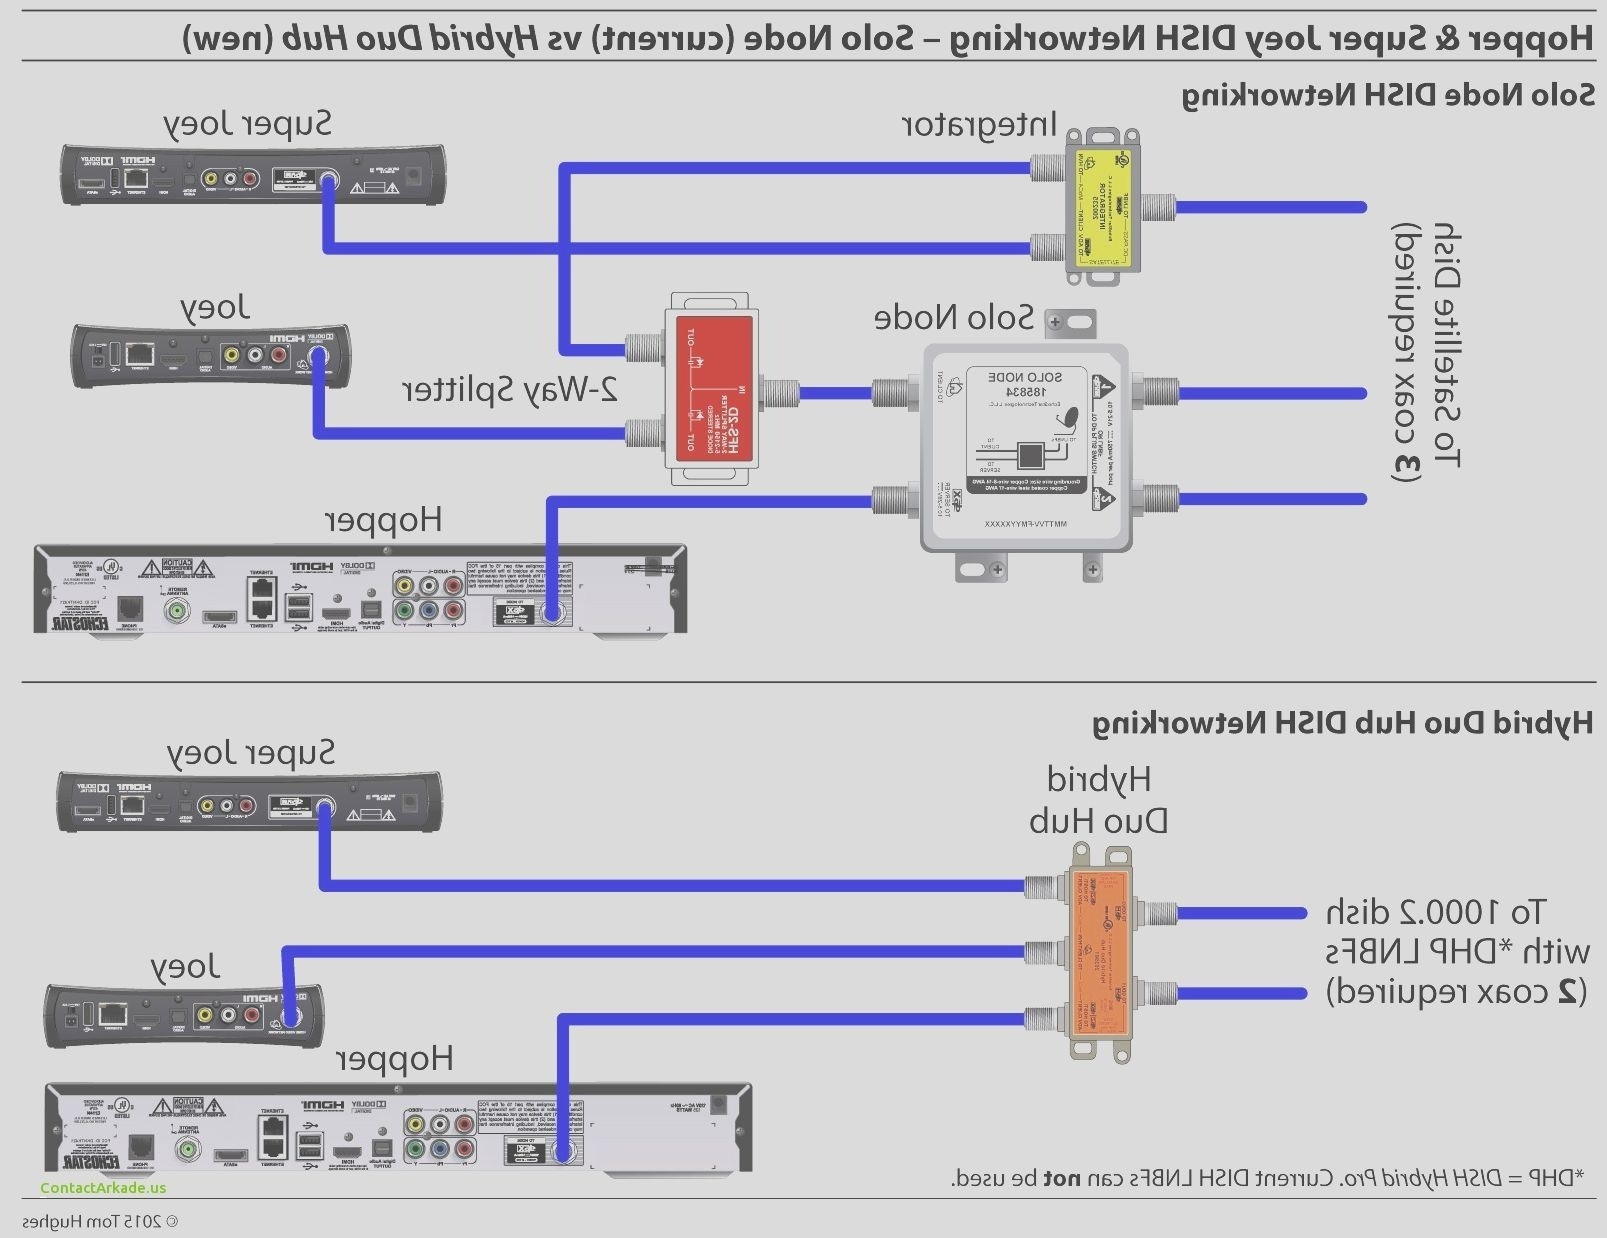 cat5e wiring diagram Collection-Wiring Diagram for A Cat5 Cable New Cat5e Wire Diagram New Ethernet Cable Wiring Diagram New 18-h